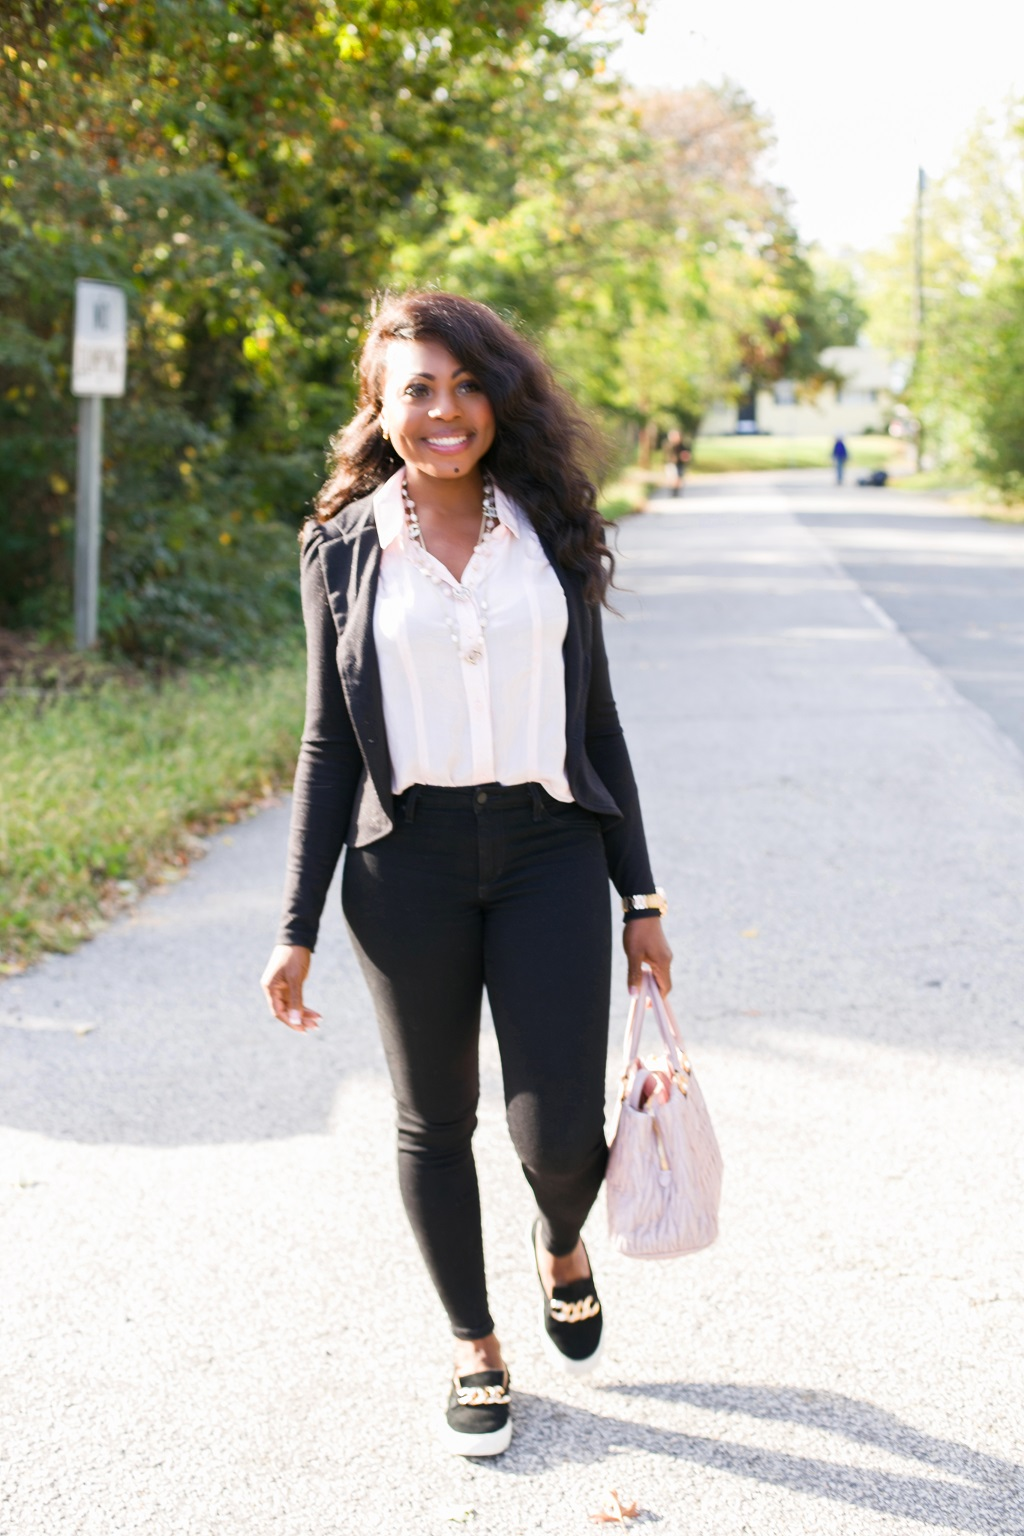 Thelma Okoro walking on the street